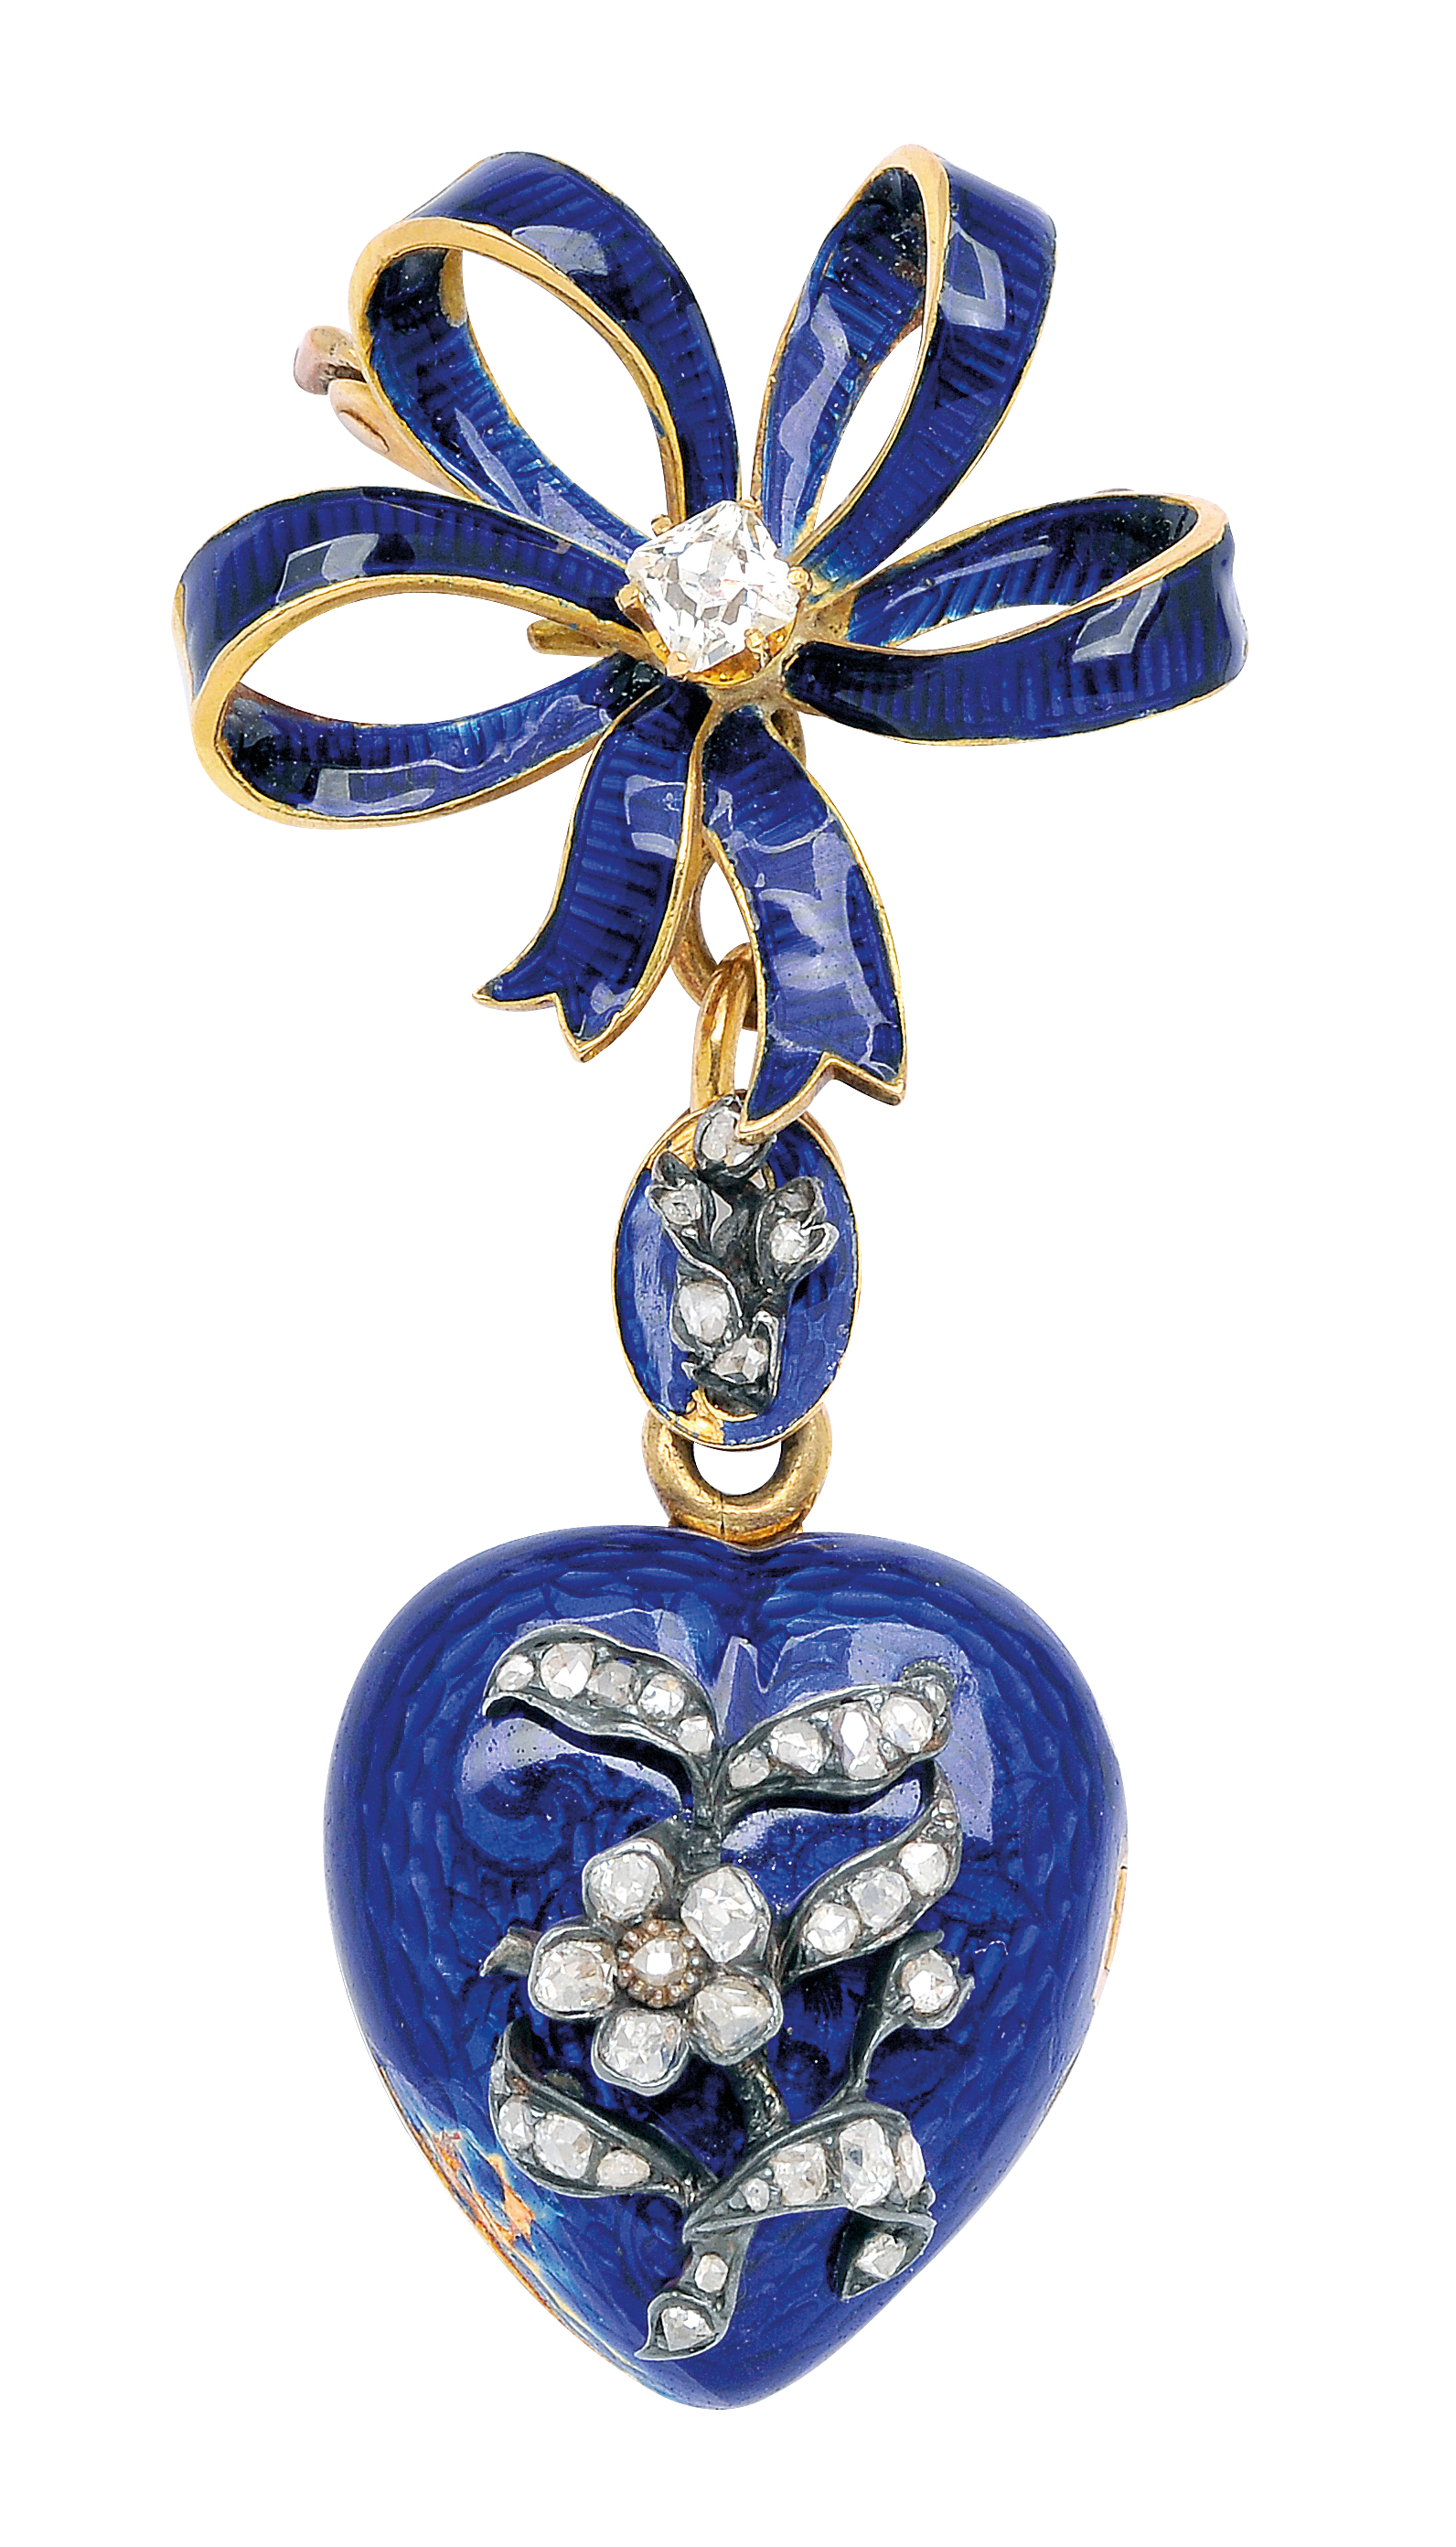 Antique Enamel and Diamond Lapel Locket: Lot 264, Spring 2014 sale